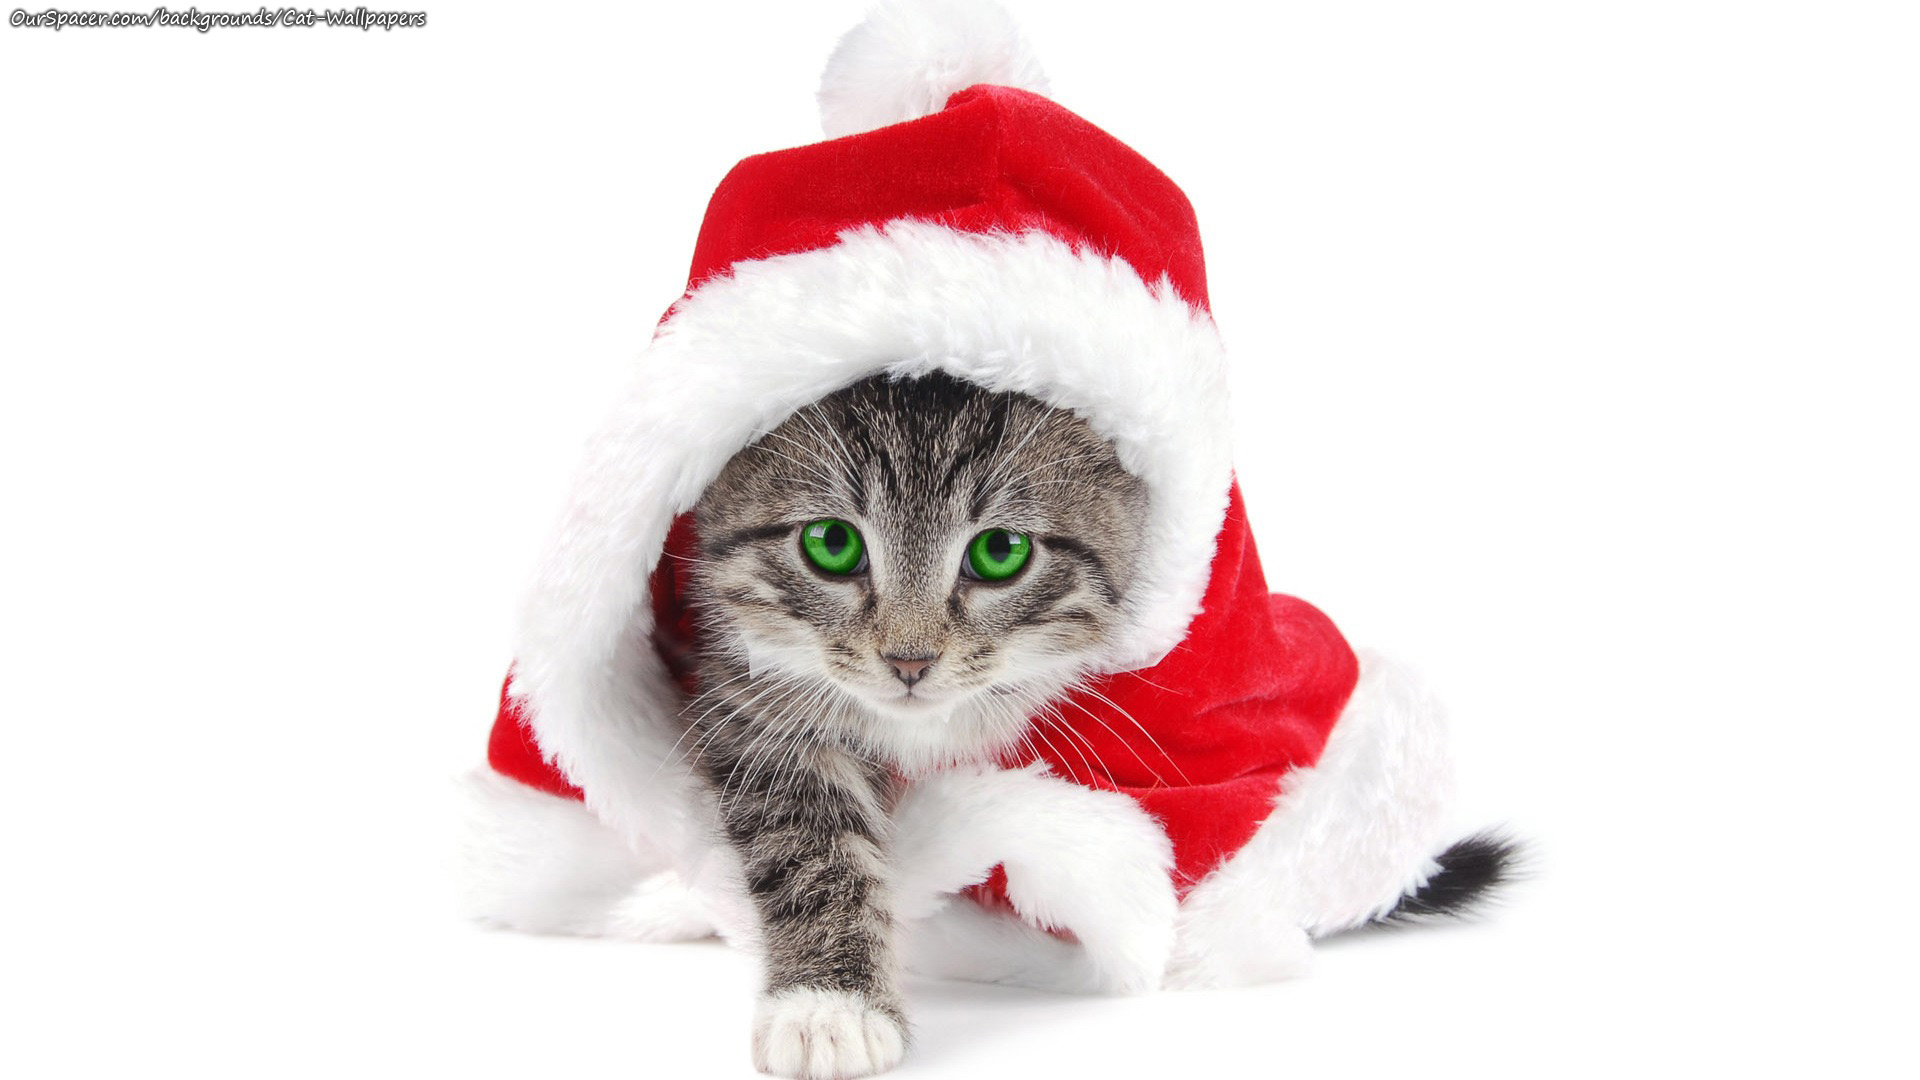 Cat wearing a Santa outfit wallpapers for myspace, twitter, and hi5 backgrounds